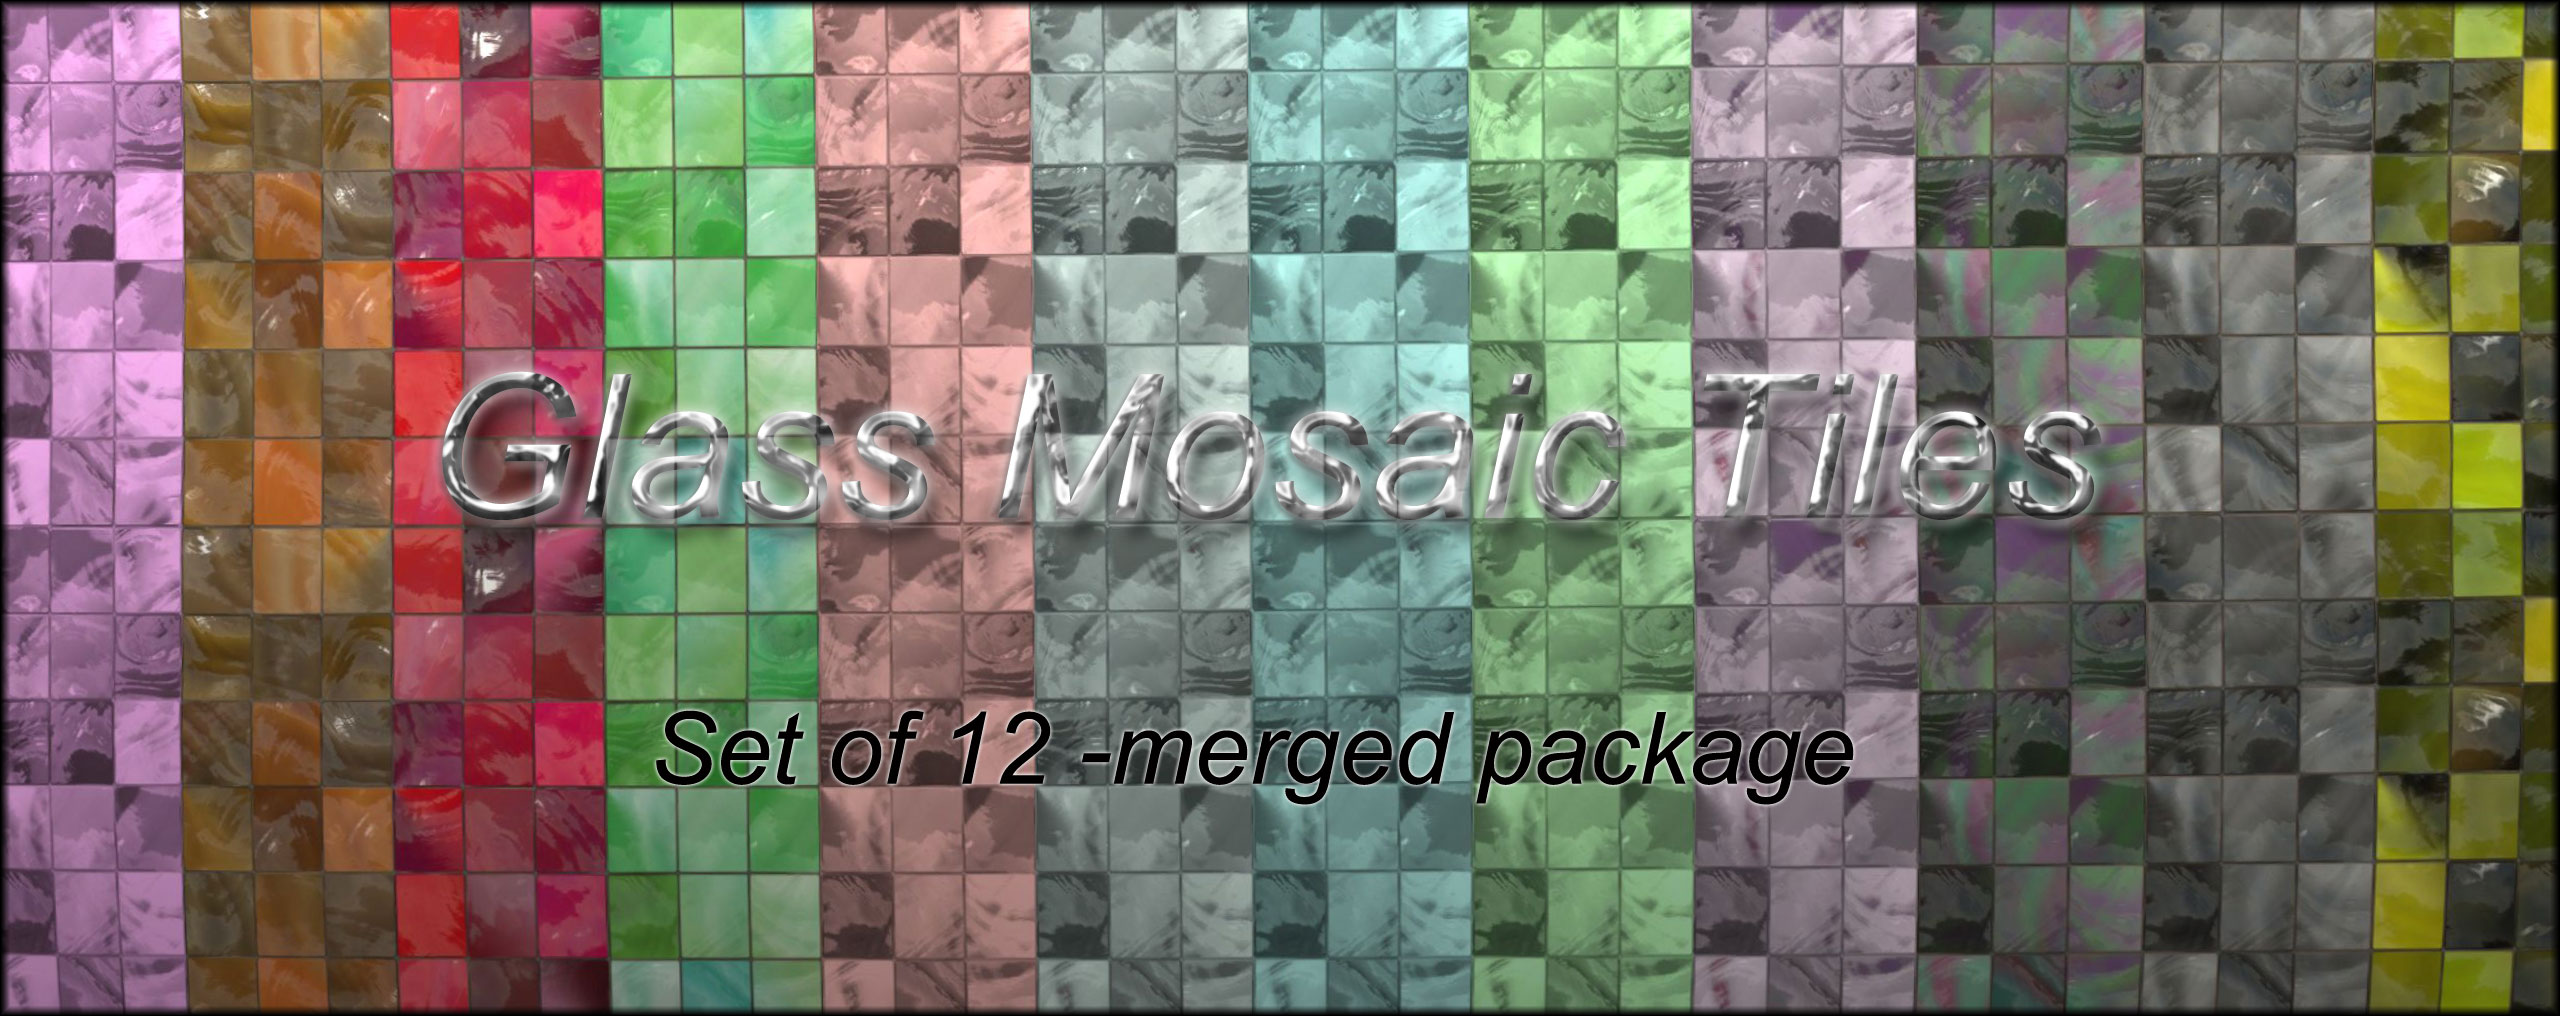 Set of 12 glass tiles by malicieuse75